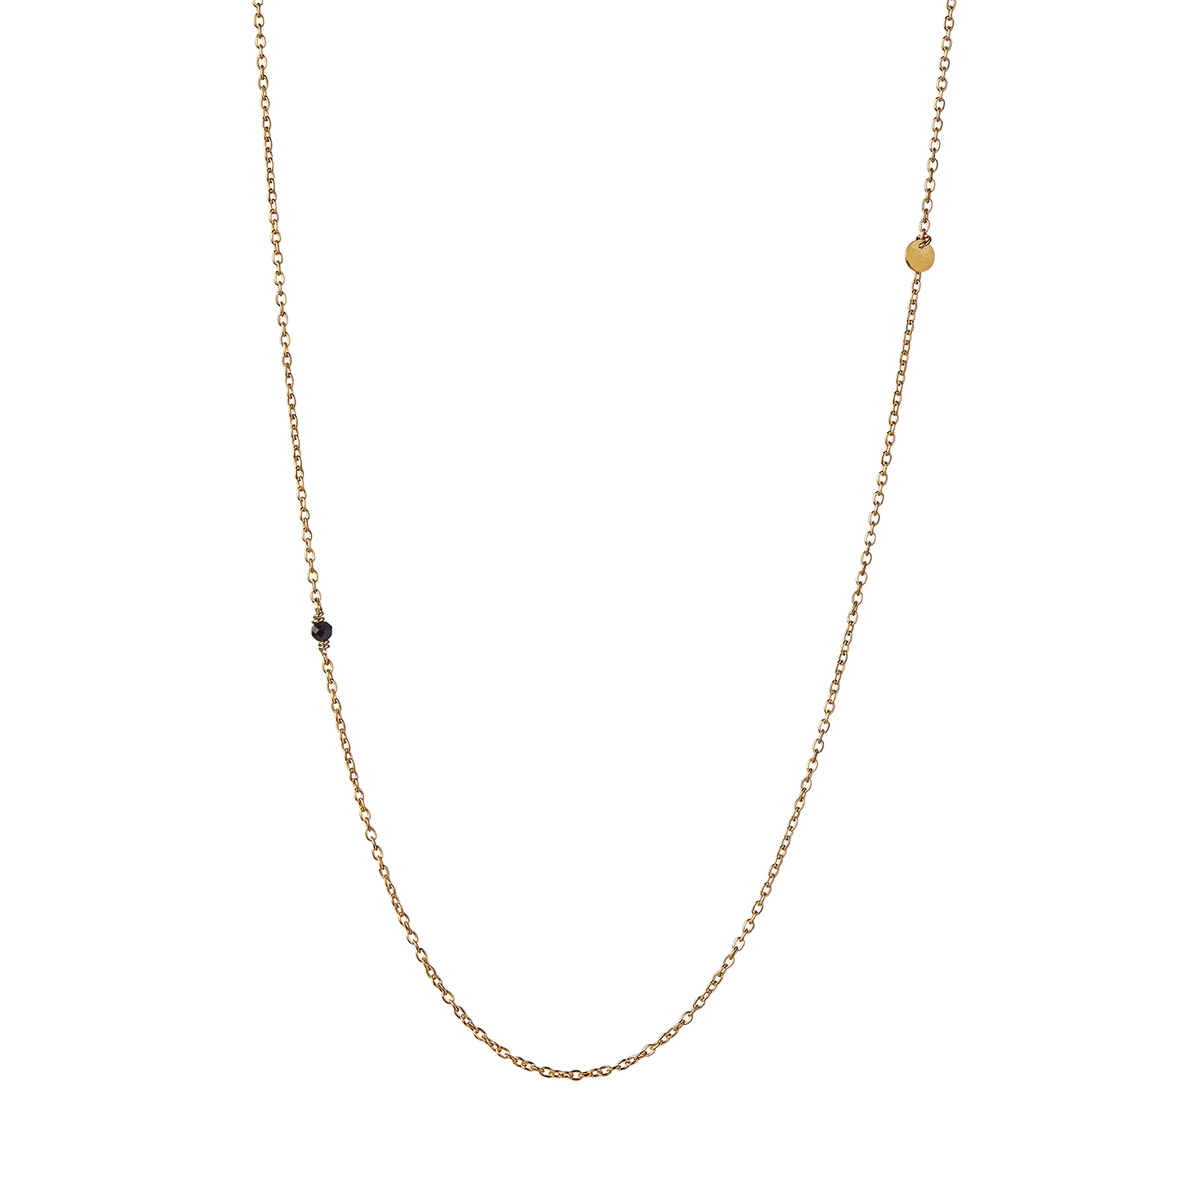 Stine A - Smykke Chain with Petit Coin